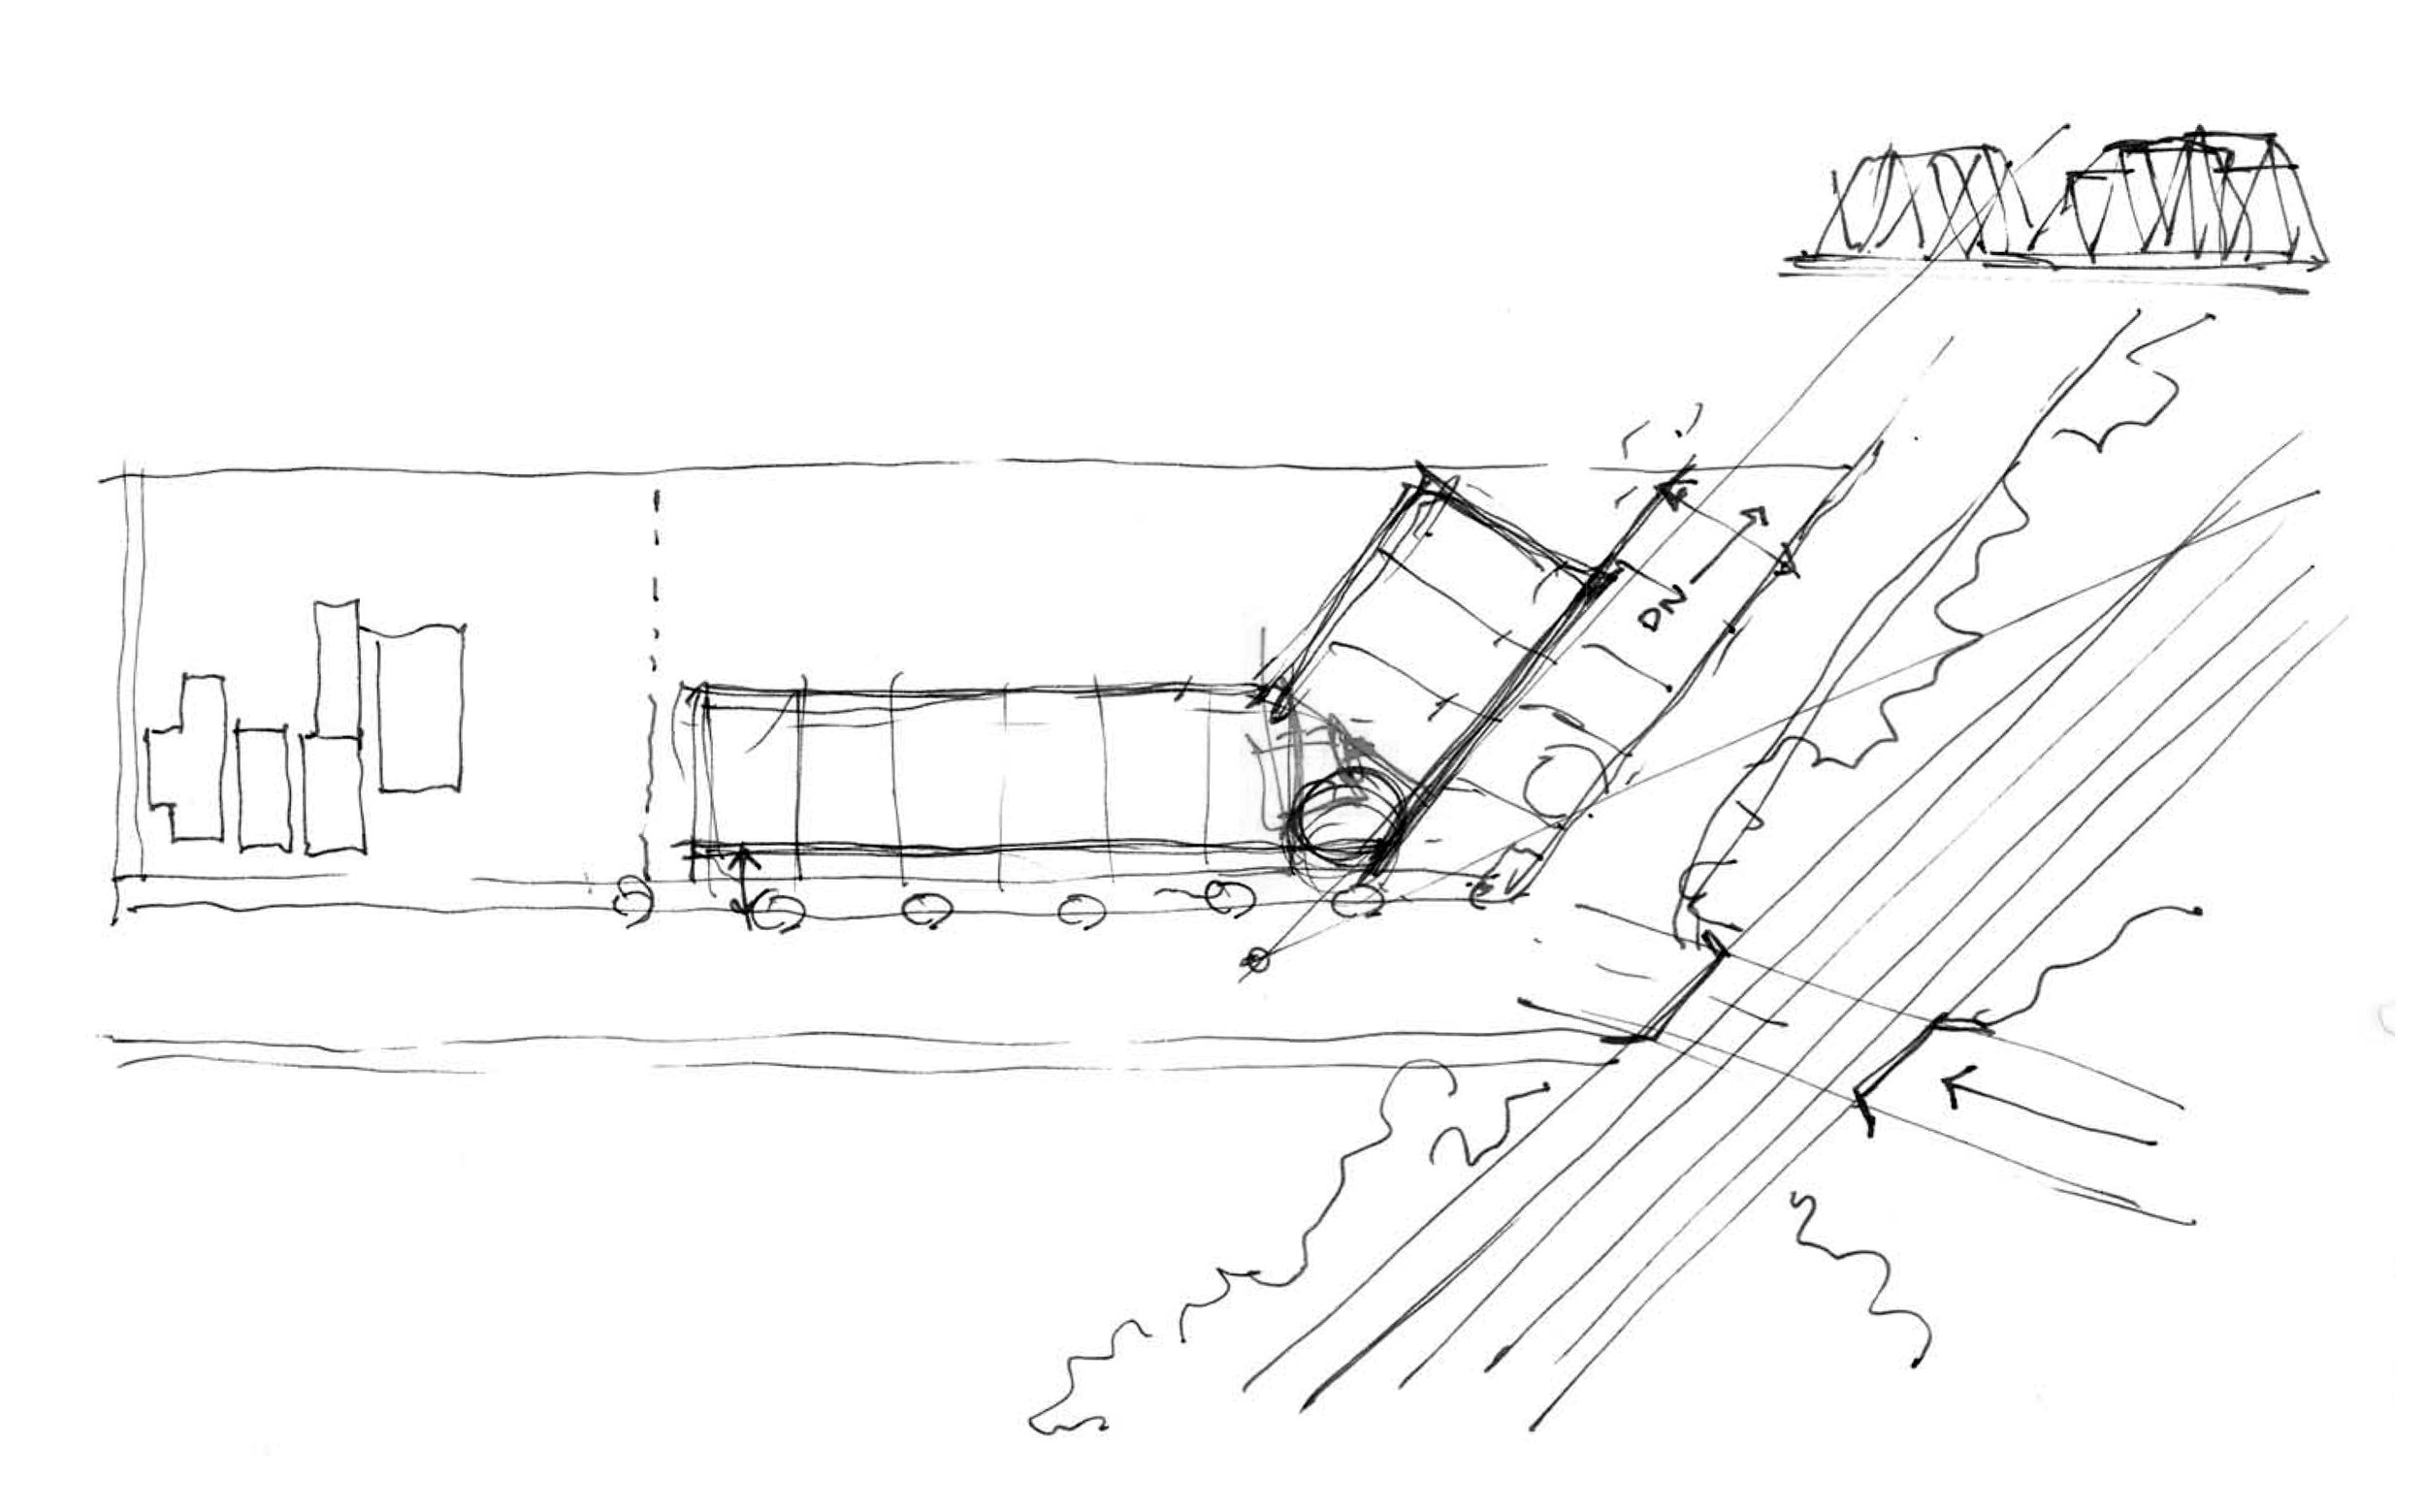 Preliminary sketch of the site